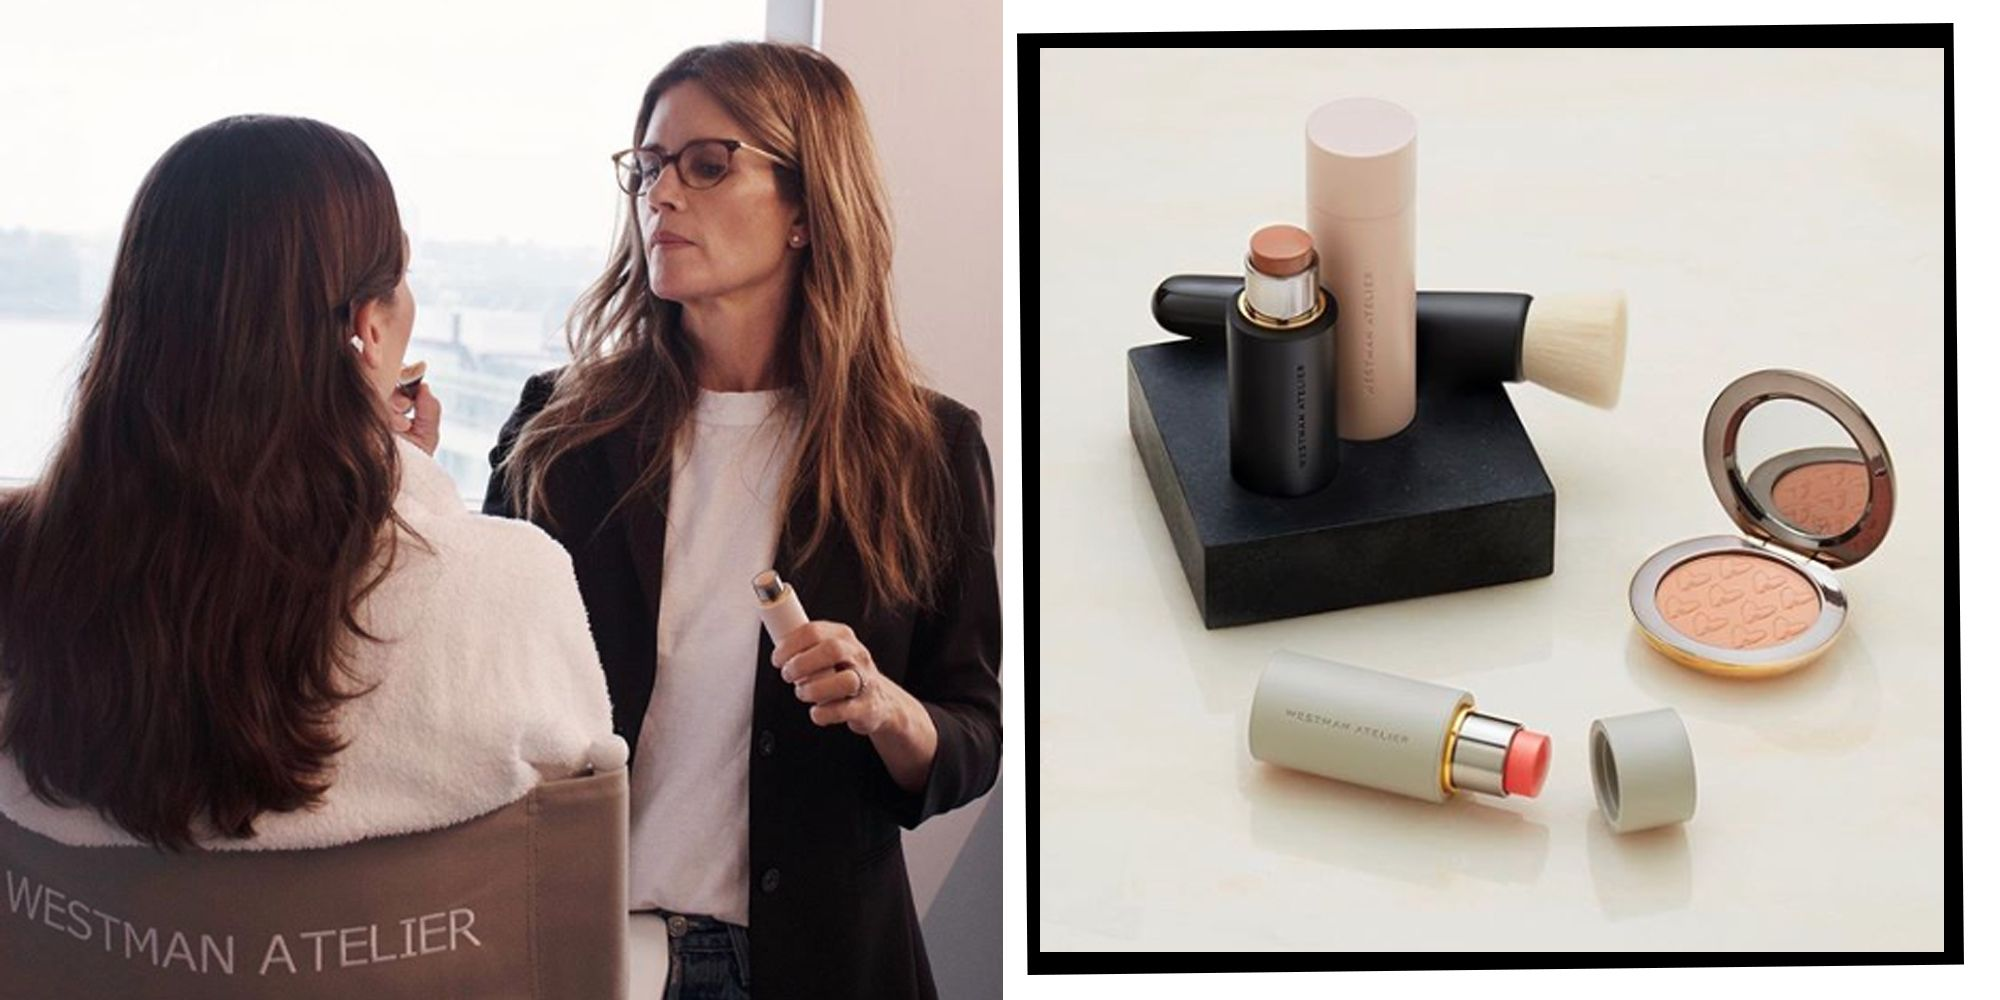 Make-Up Artist Gucci Westman On Her New Westman Atelier Line And The Importance Of Clean Beauty